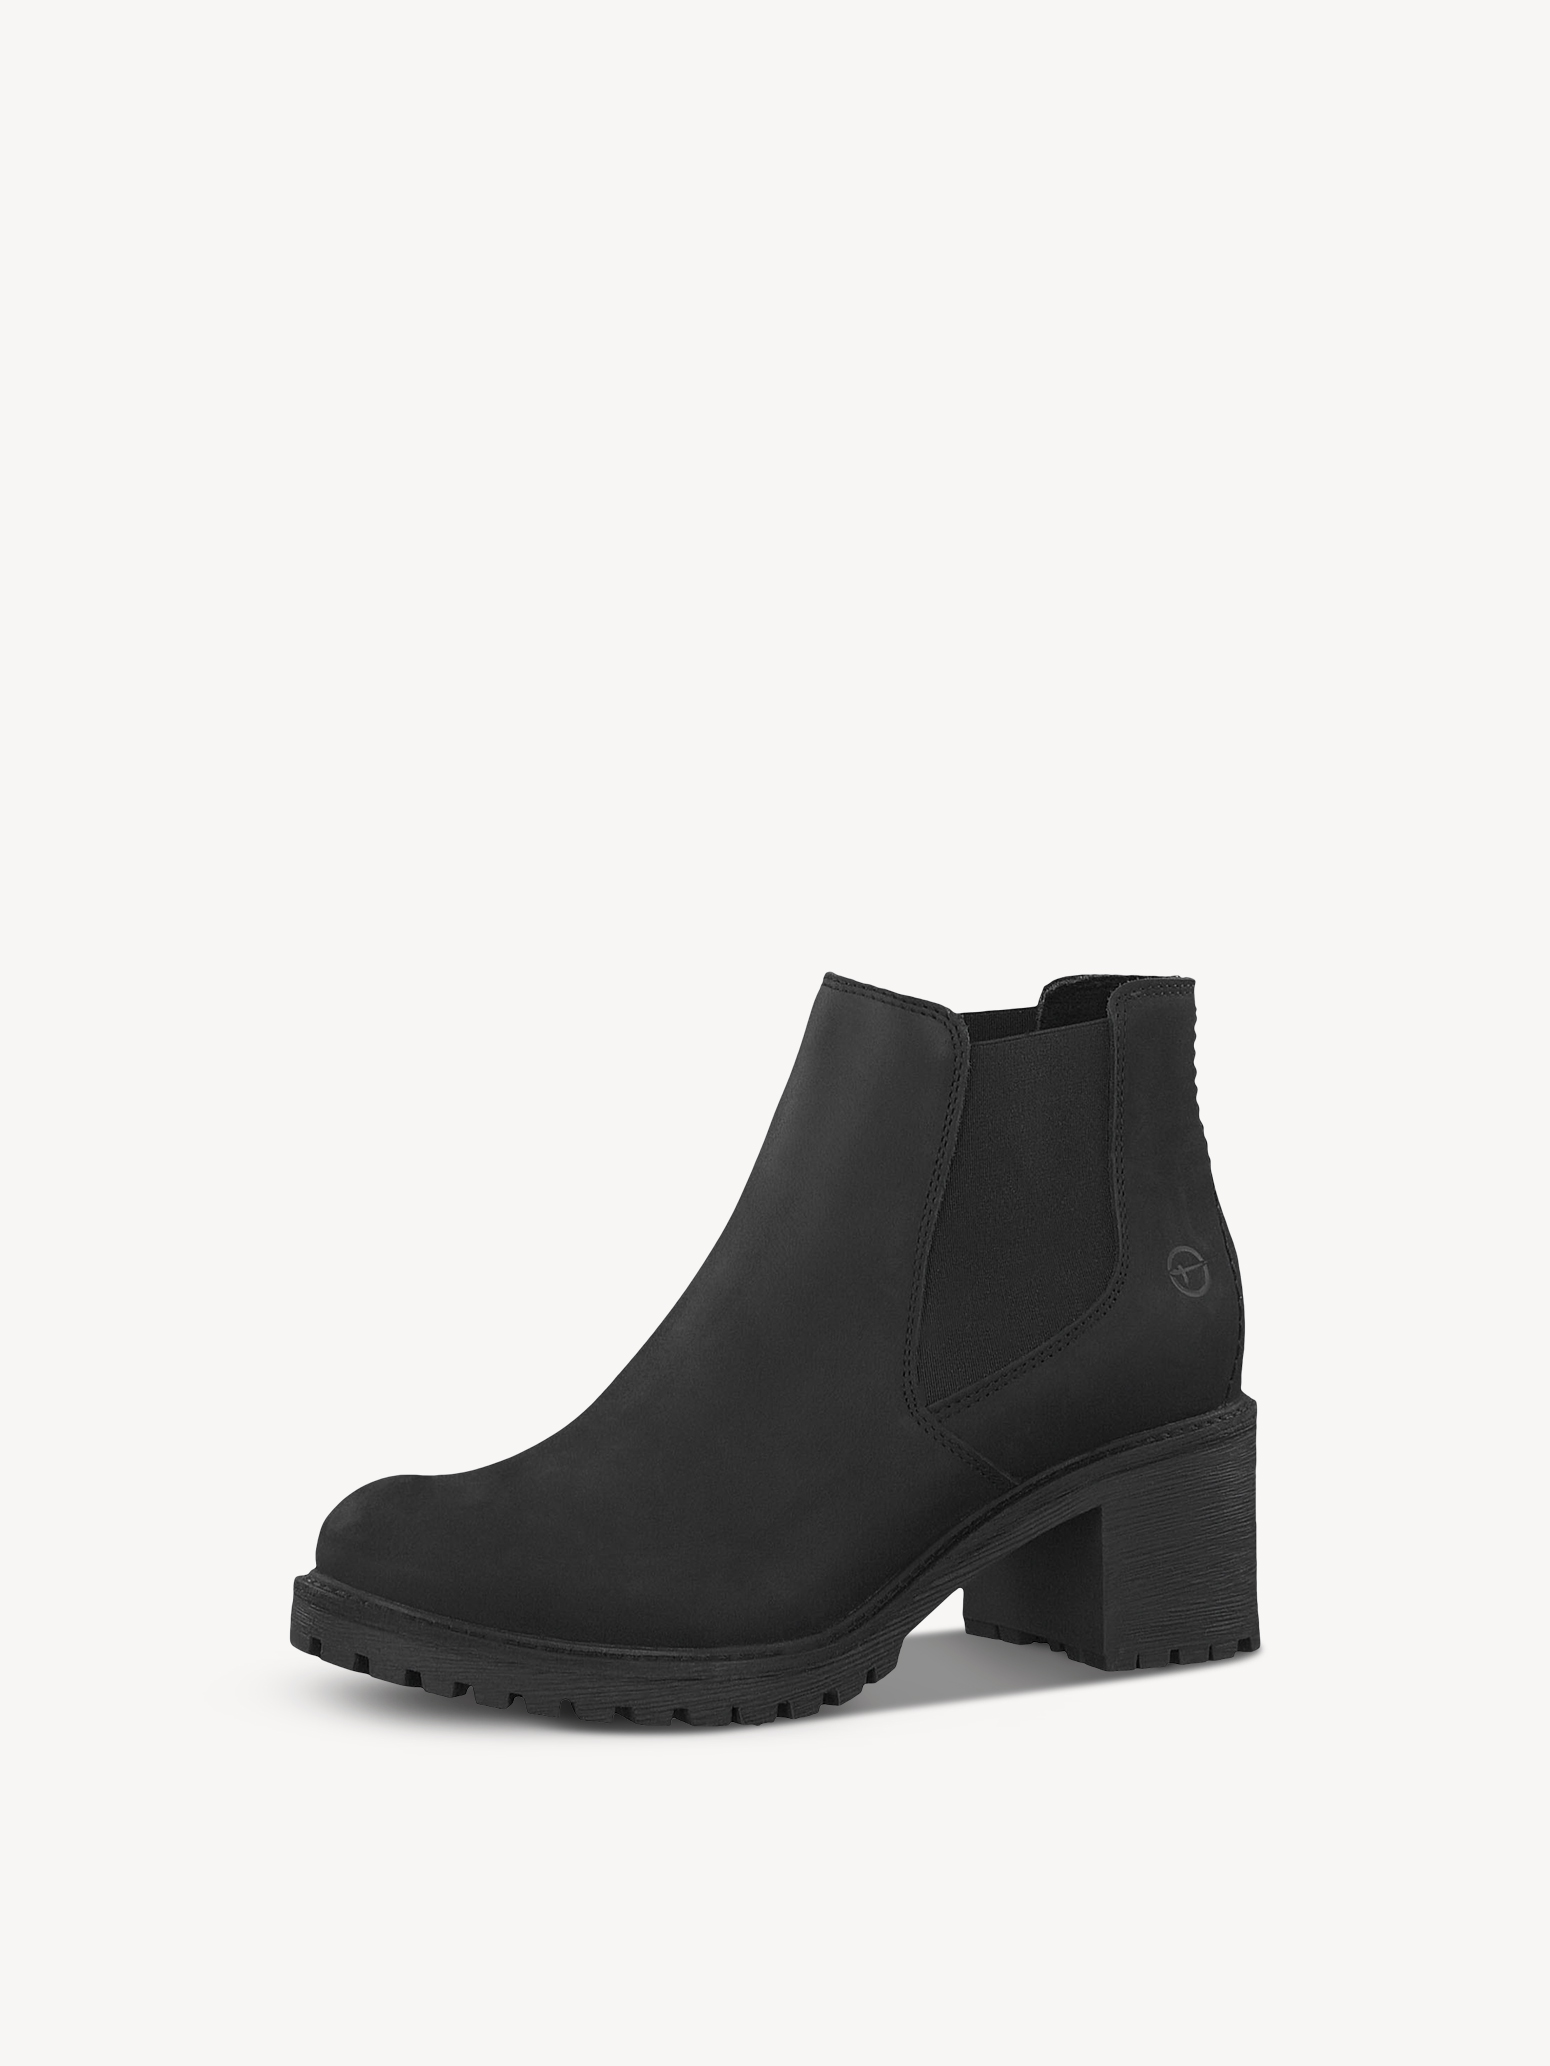 Leather Chelsea boot - black, BLACK UNI, hi-res